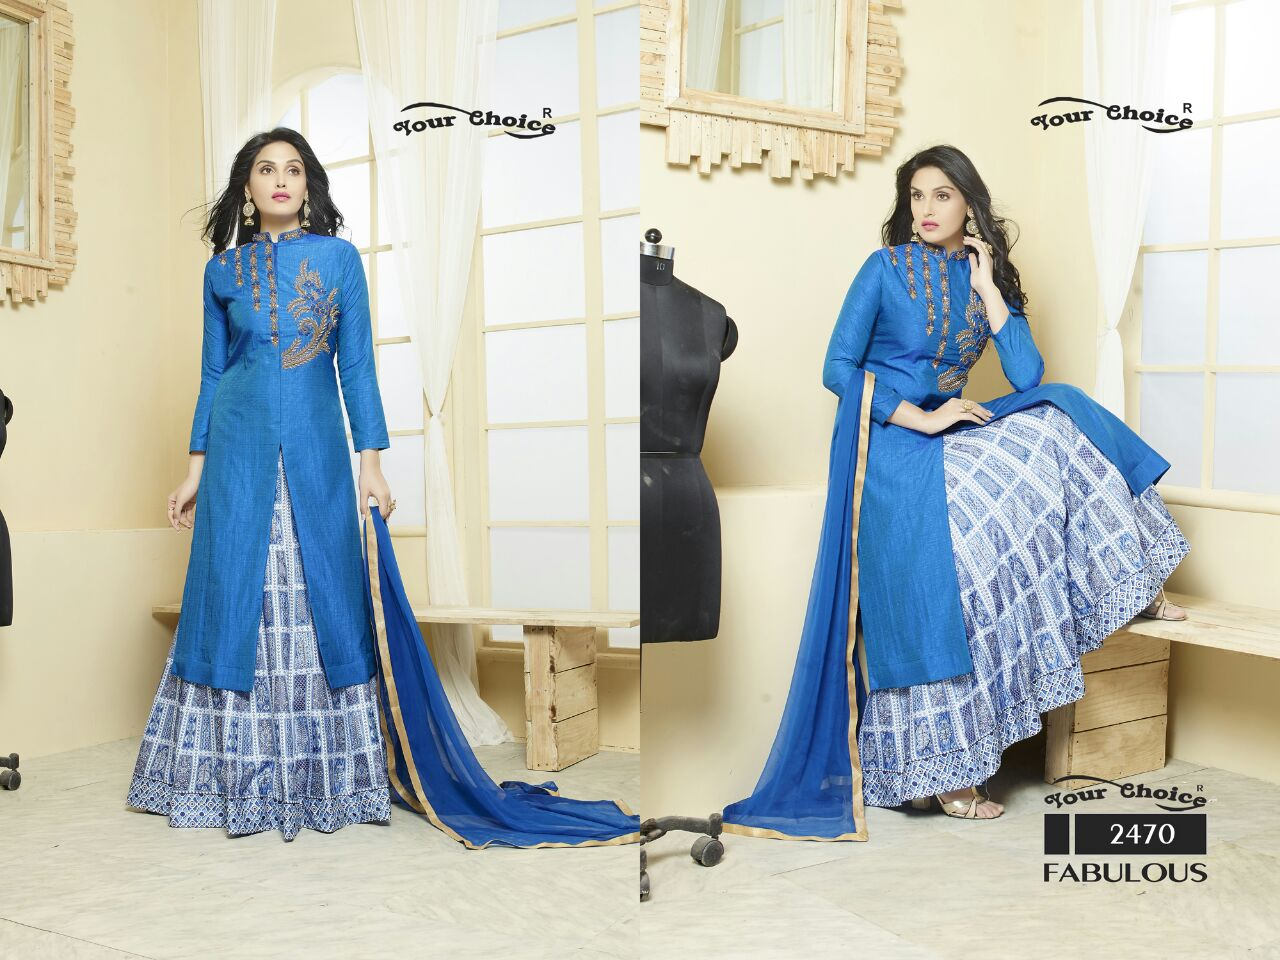 Fabulous – Long Length Palazzo Style Cotton Salwar Suit